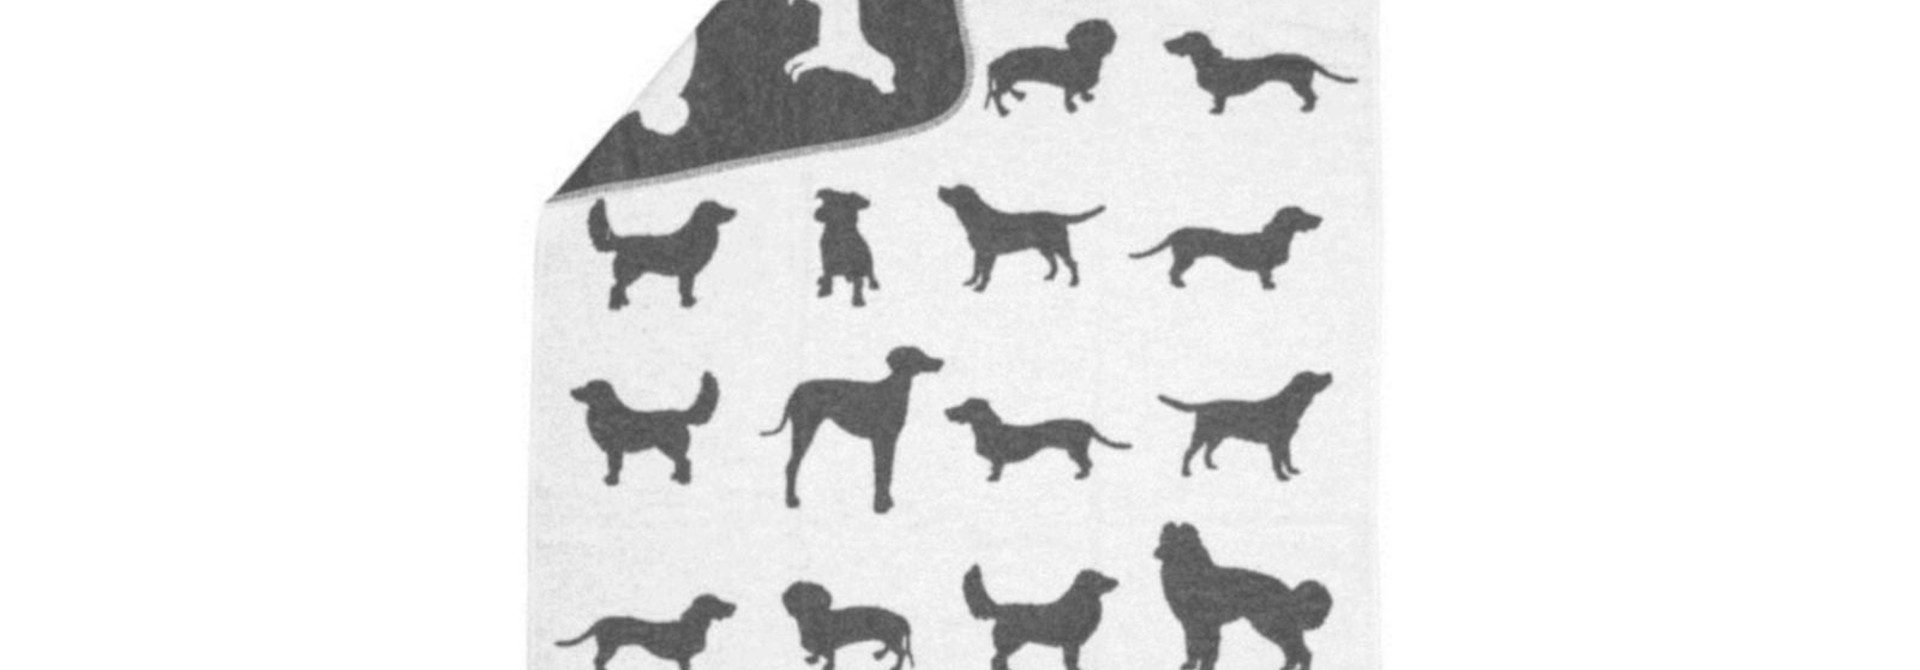 Blanket - Pet - All Over Dogs